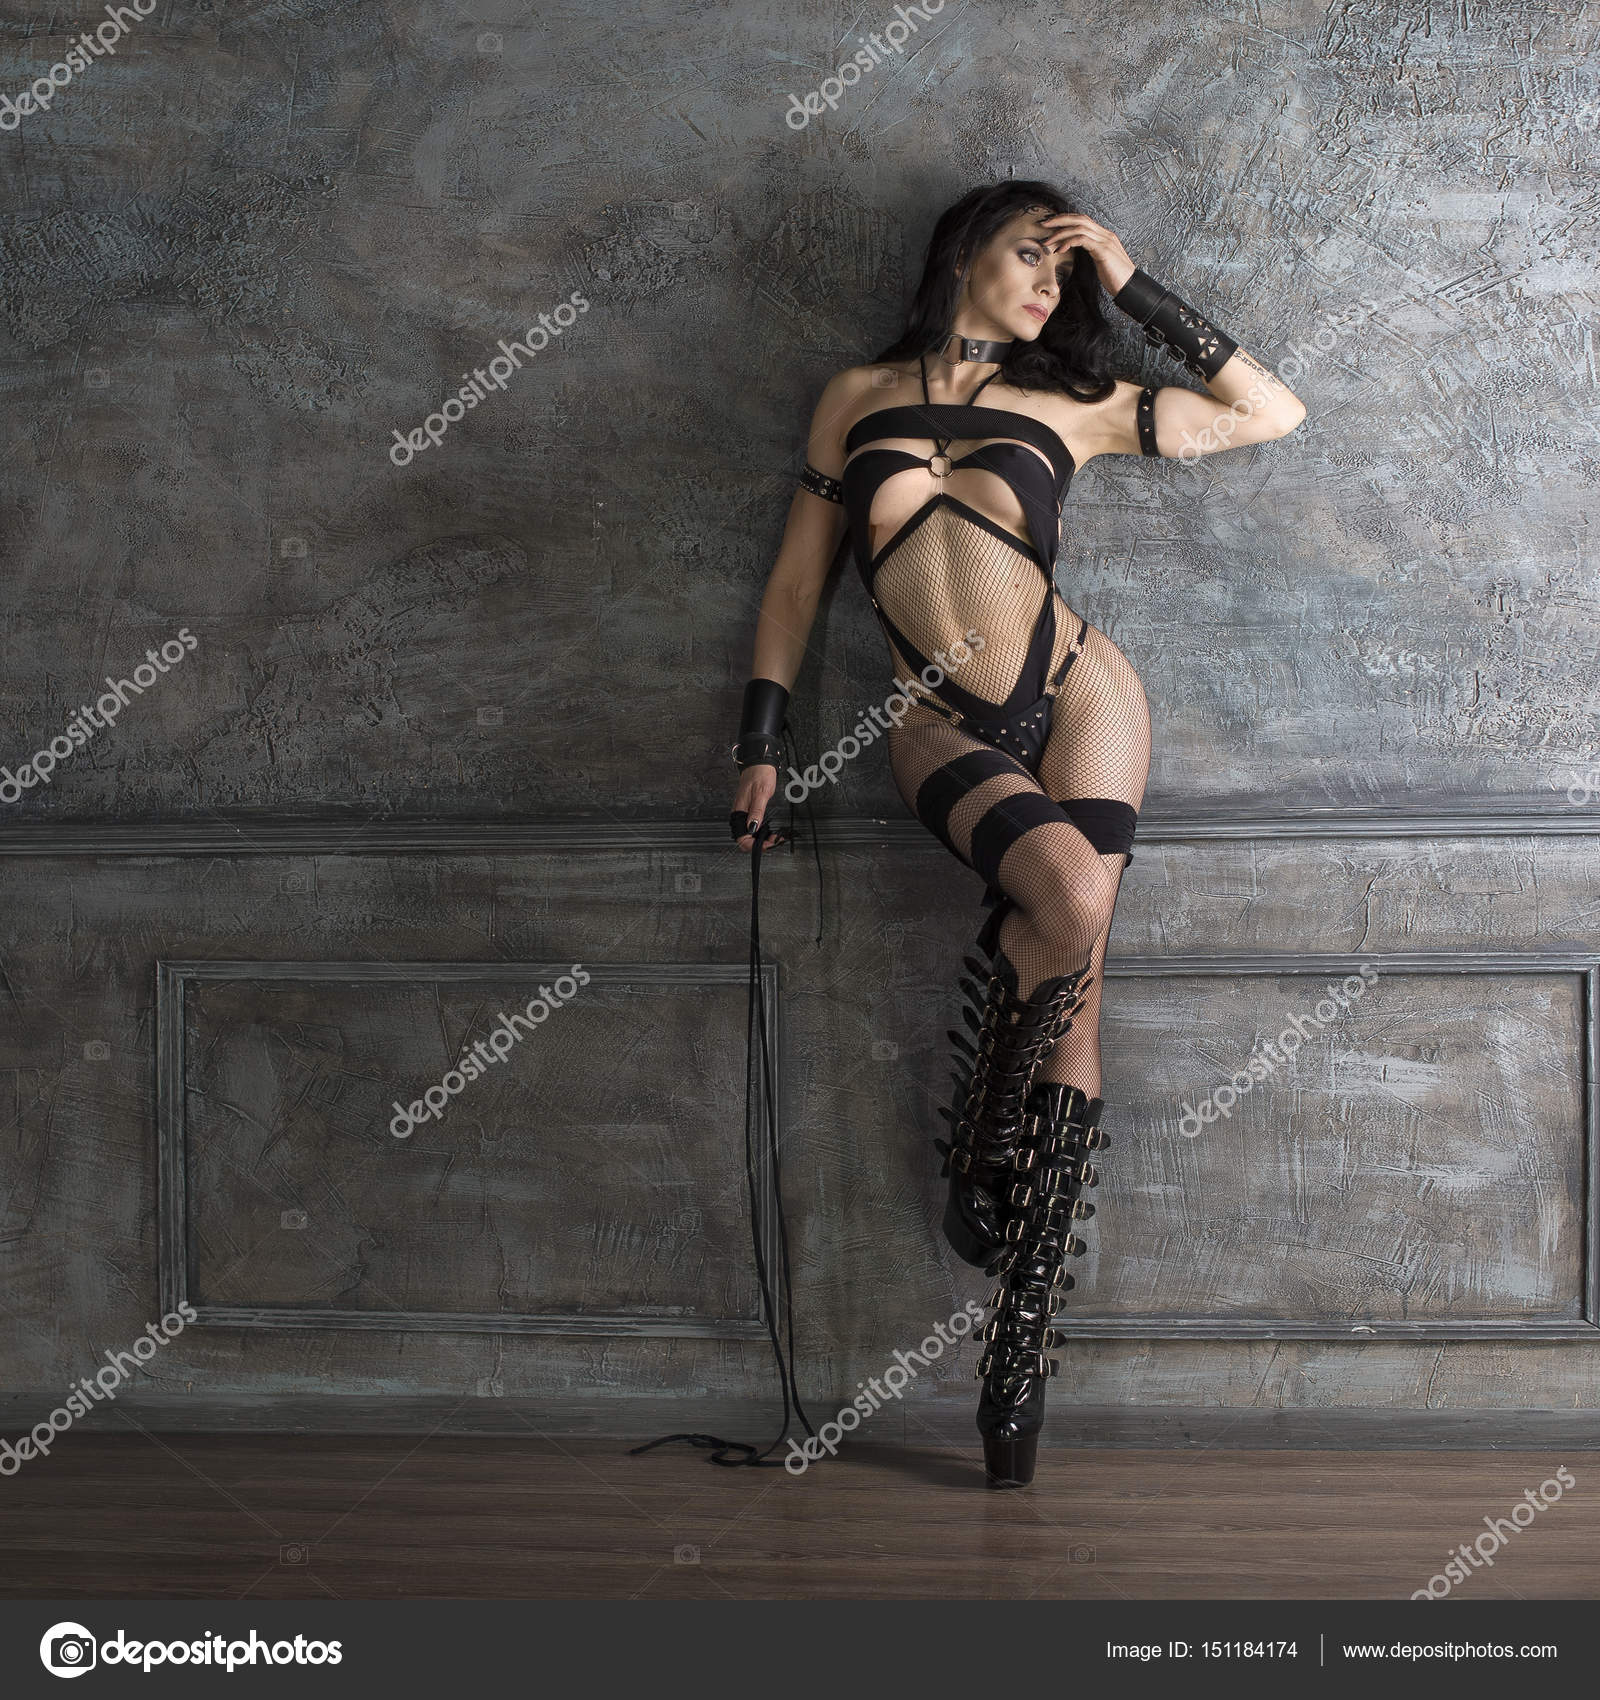 Why do girls like bondage